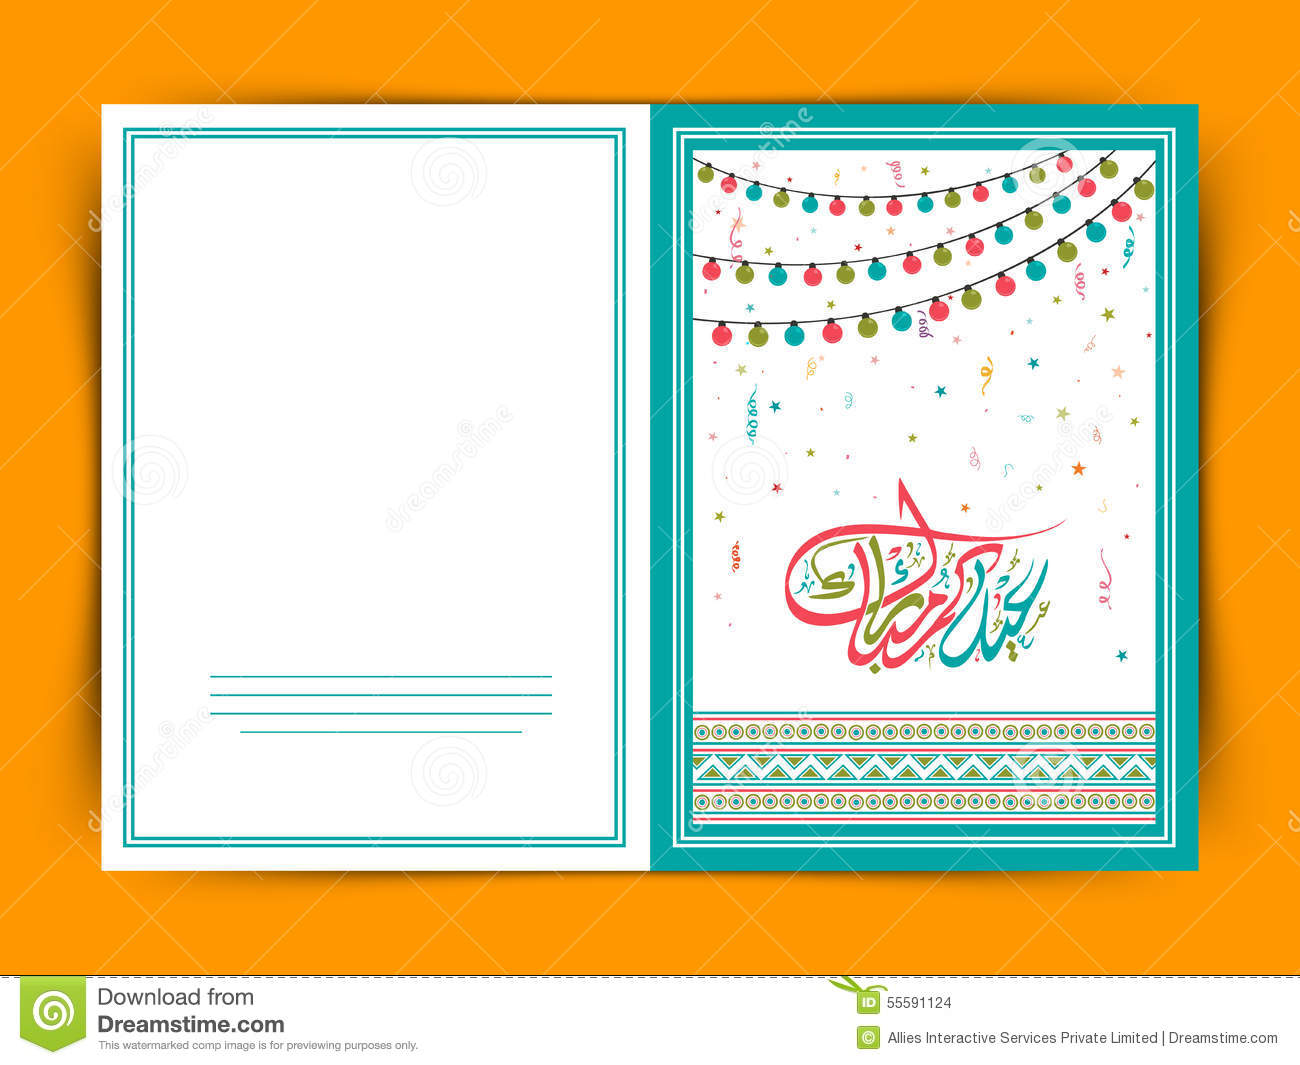 Greeting Card With Arabic Text For Eid Mubarak. Stock Illustration ...